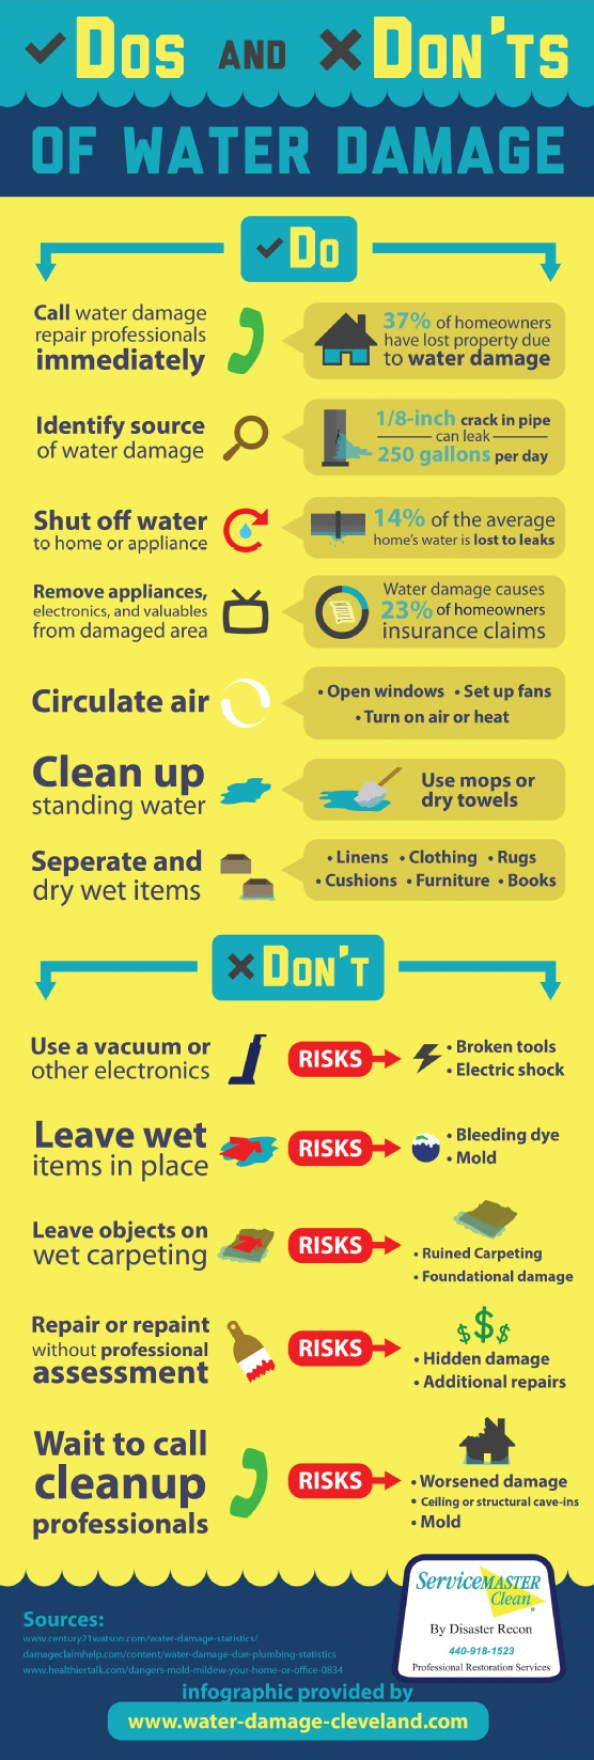 Dos and Don&#039;ts of Water Damage Infographic